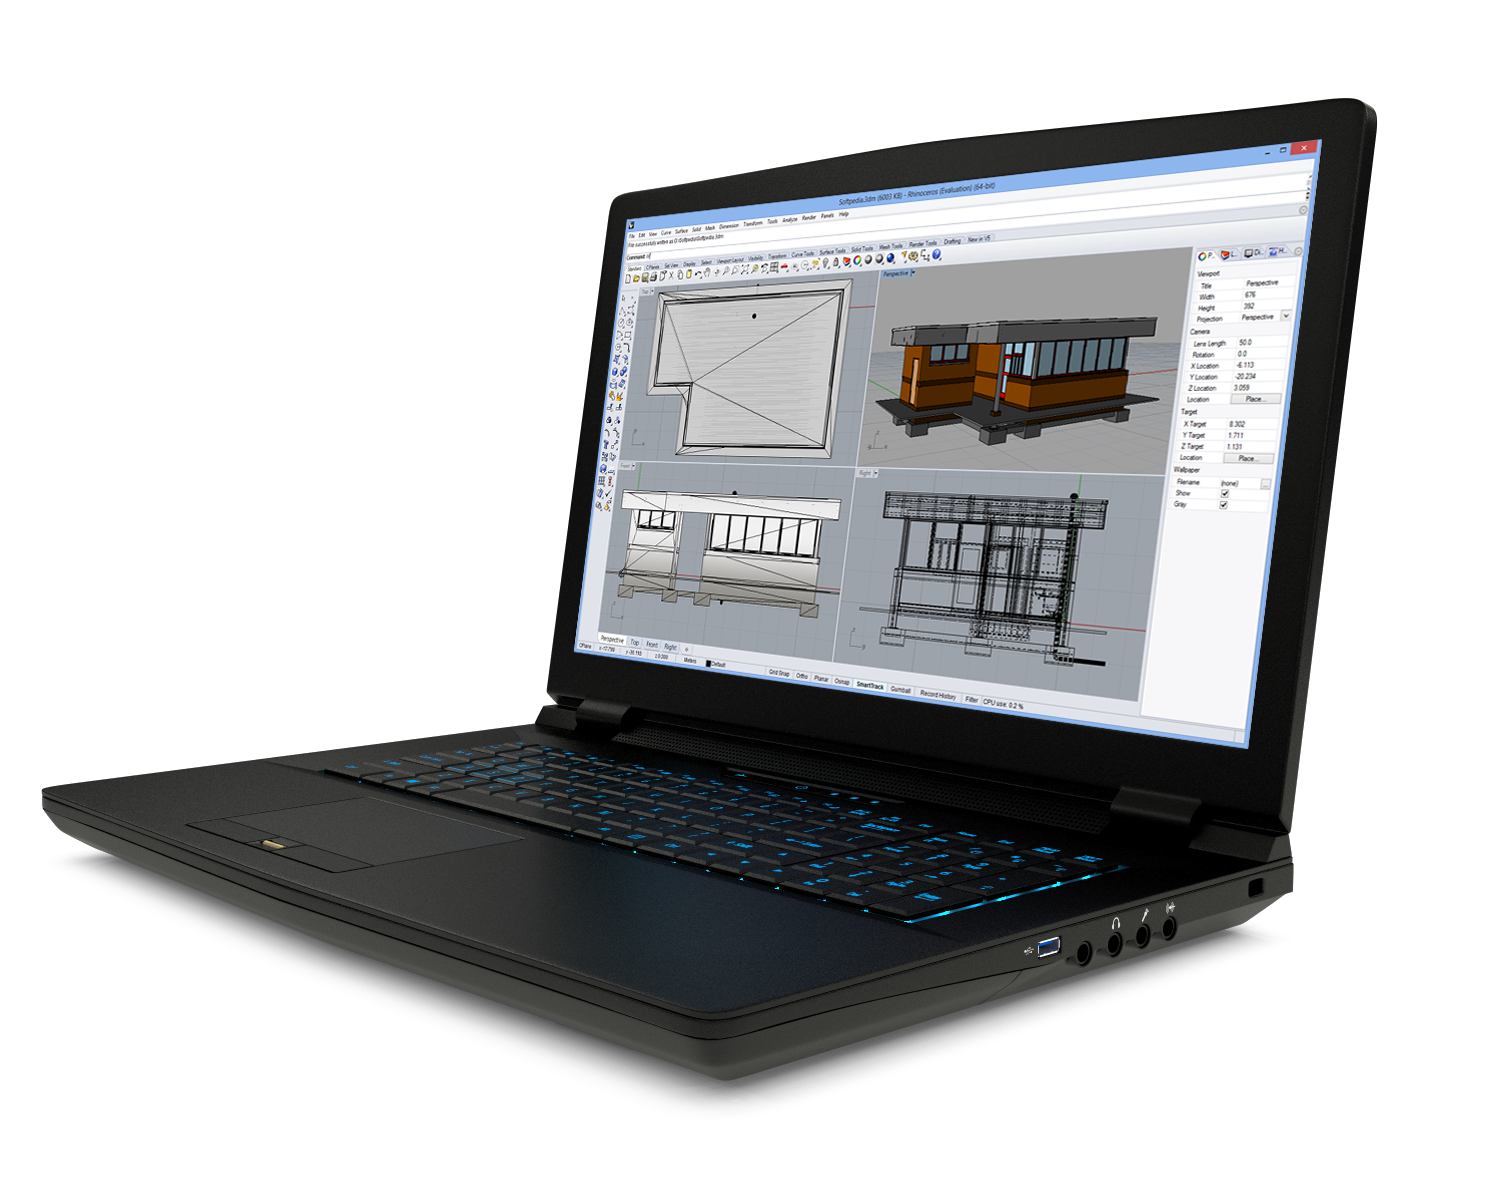 Best Laptop for Revit